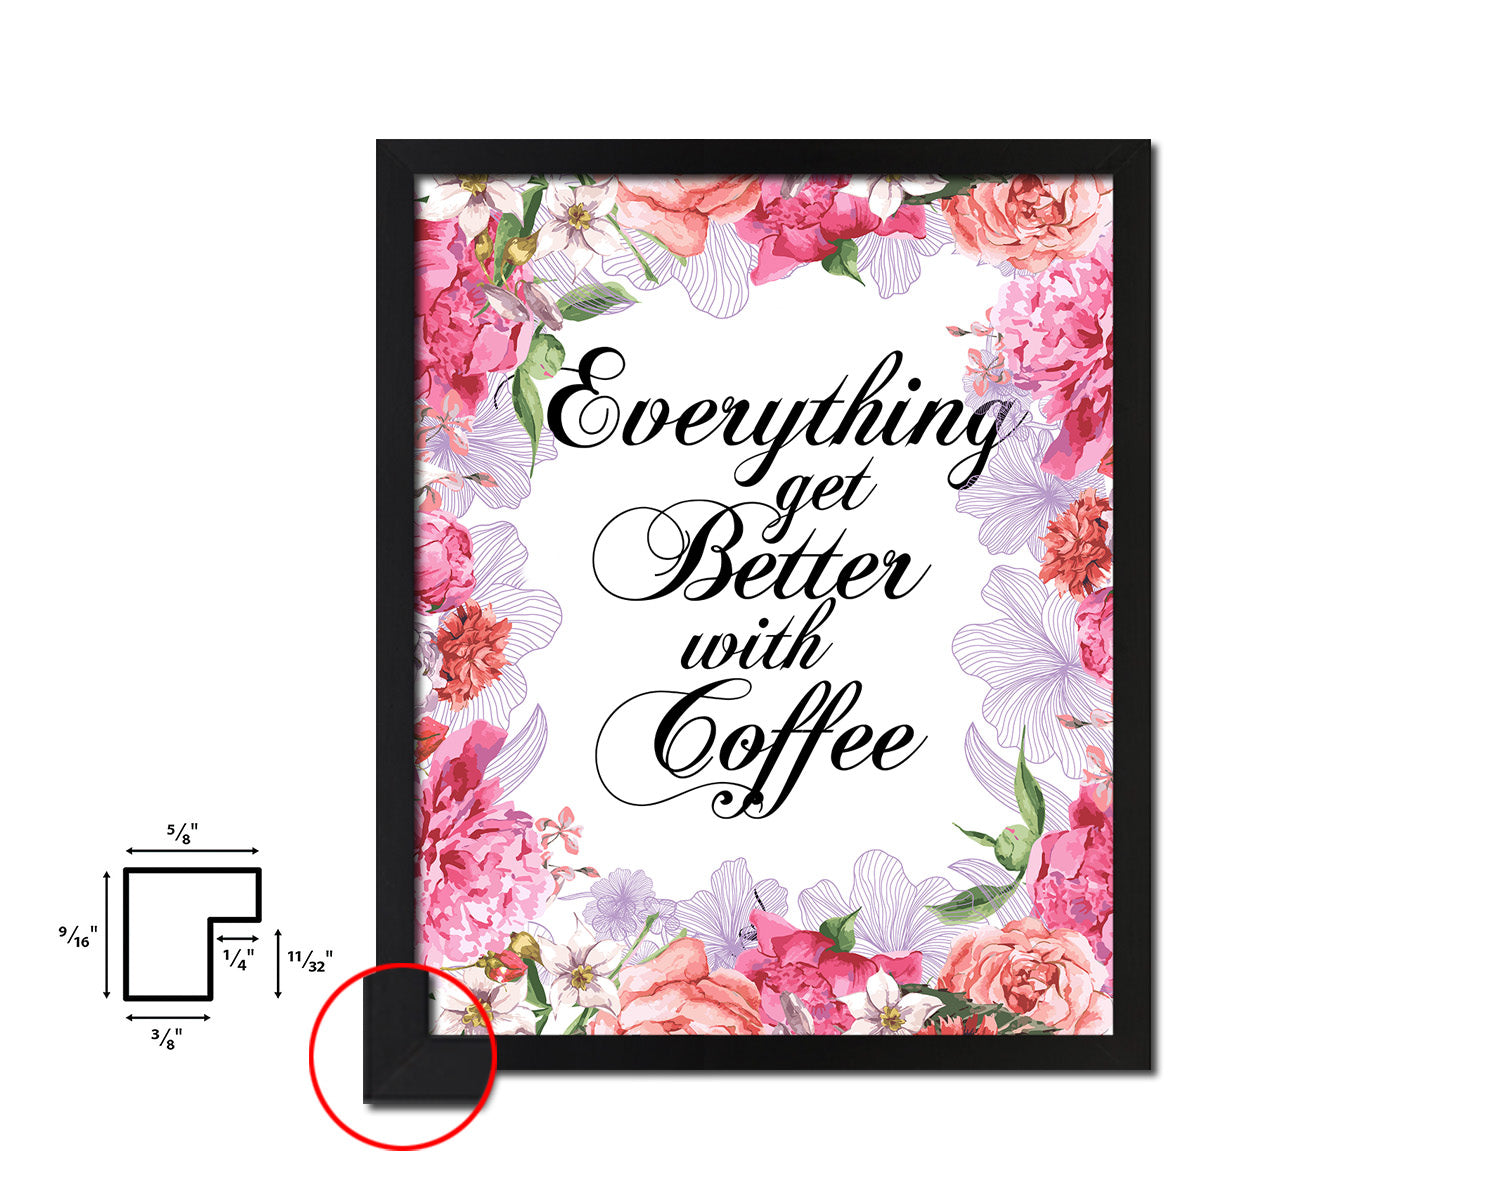 Everything gets better with coffee Quote Framed Artwork Print Wall Decor Art Gifts